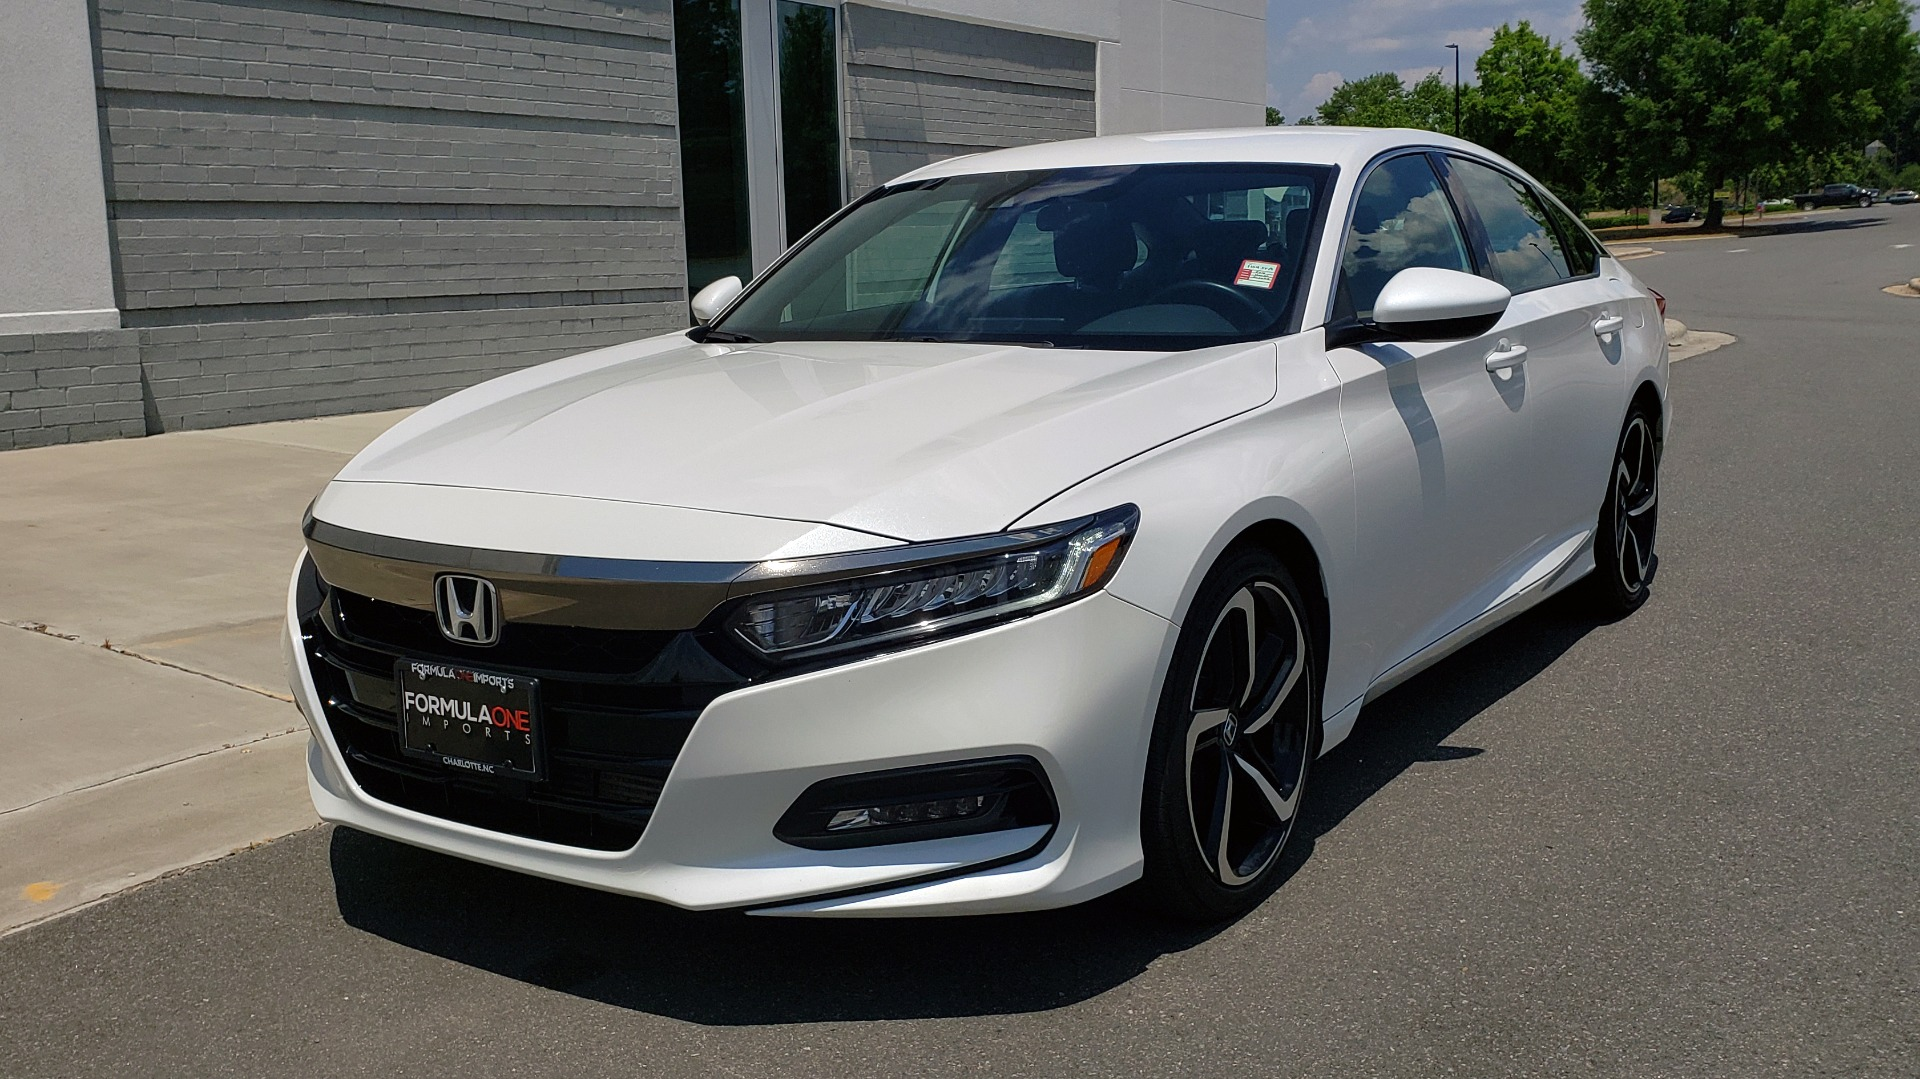 Used 2018 Honda ACCORD SEDAN SPORT 1.5T / CVT TRANS / FWD / 19IN WHEELS for sale $20,995 at Formula Imports in Charlotte NC 28227 3